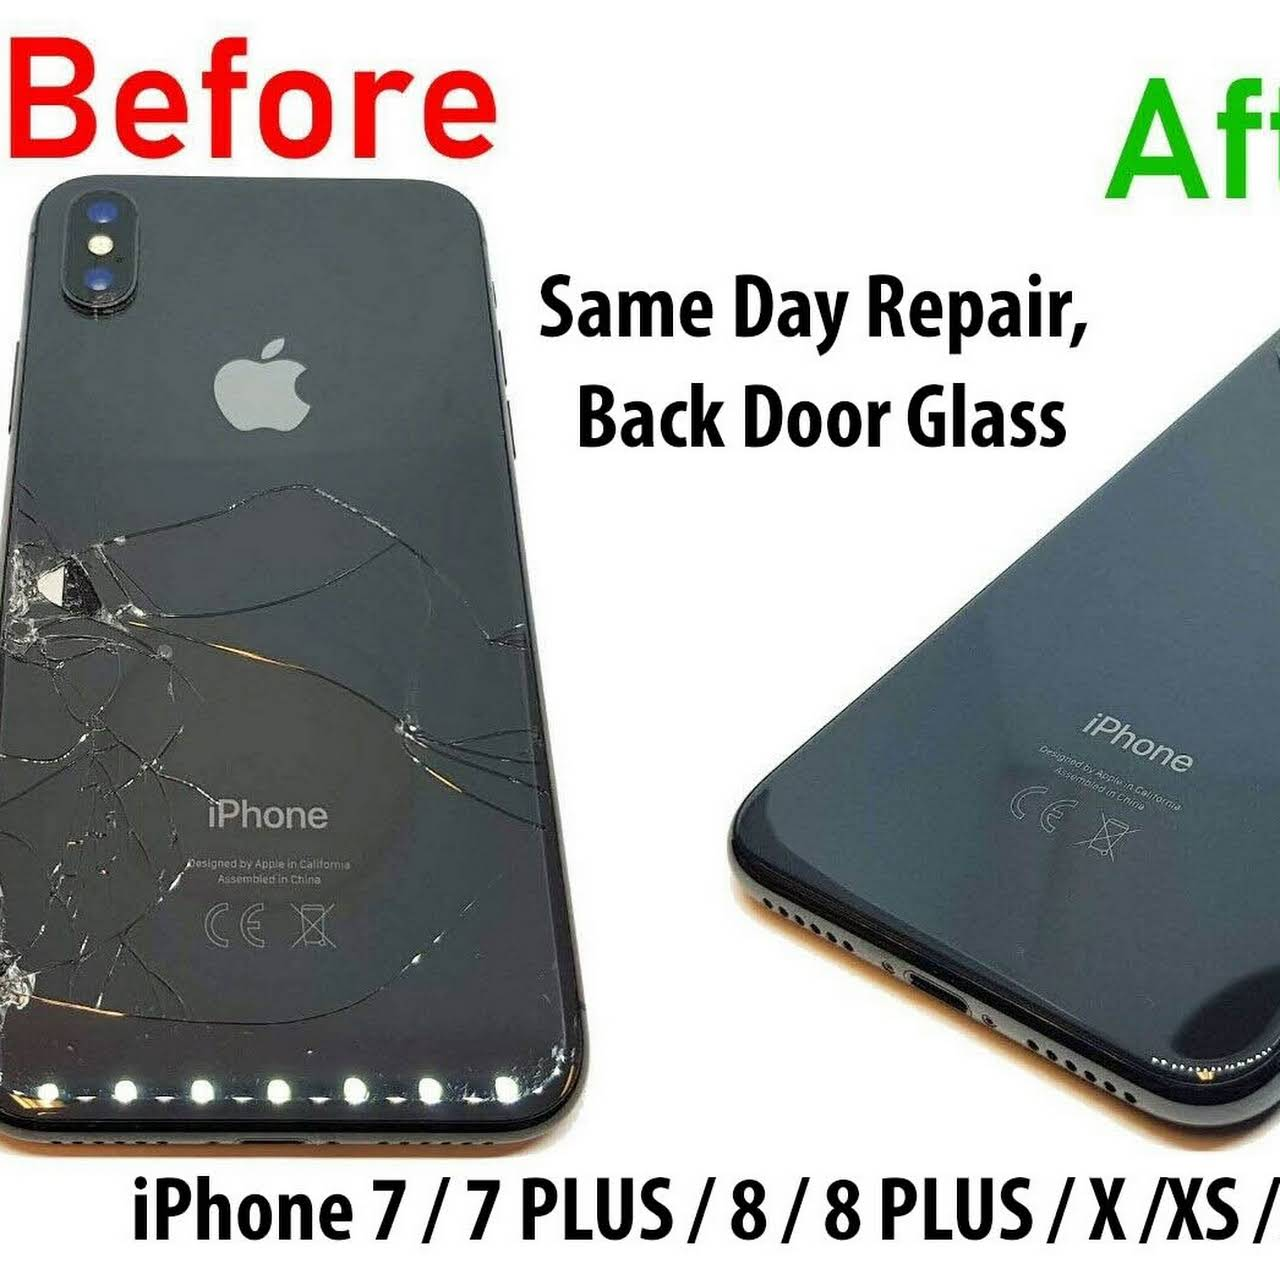 Phone Houston Store Repair Tx Katy - Cell In